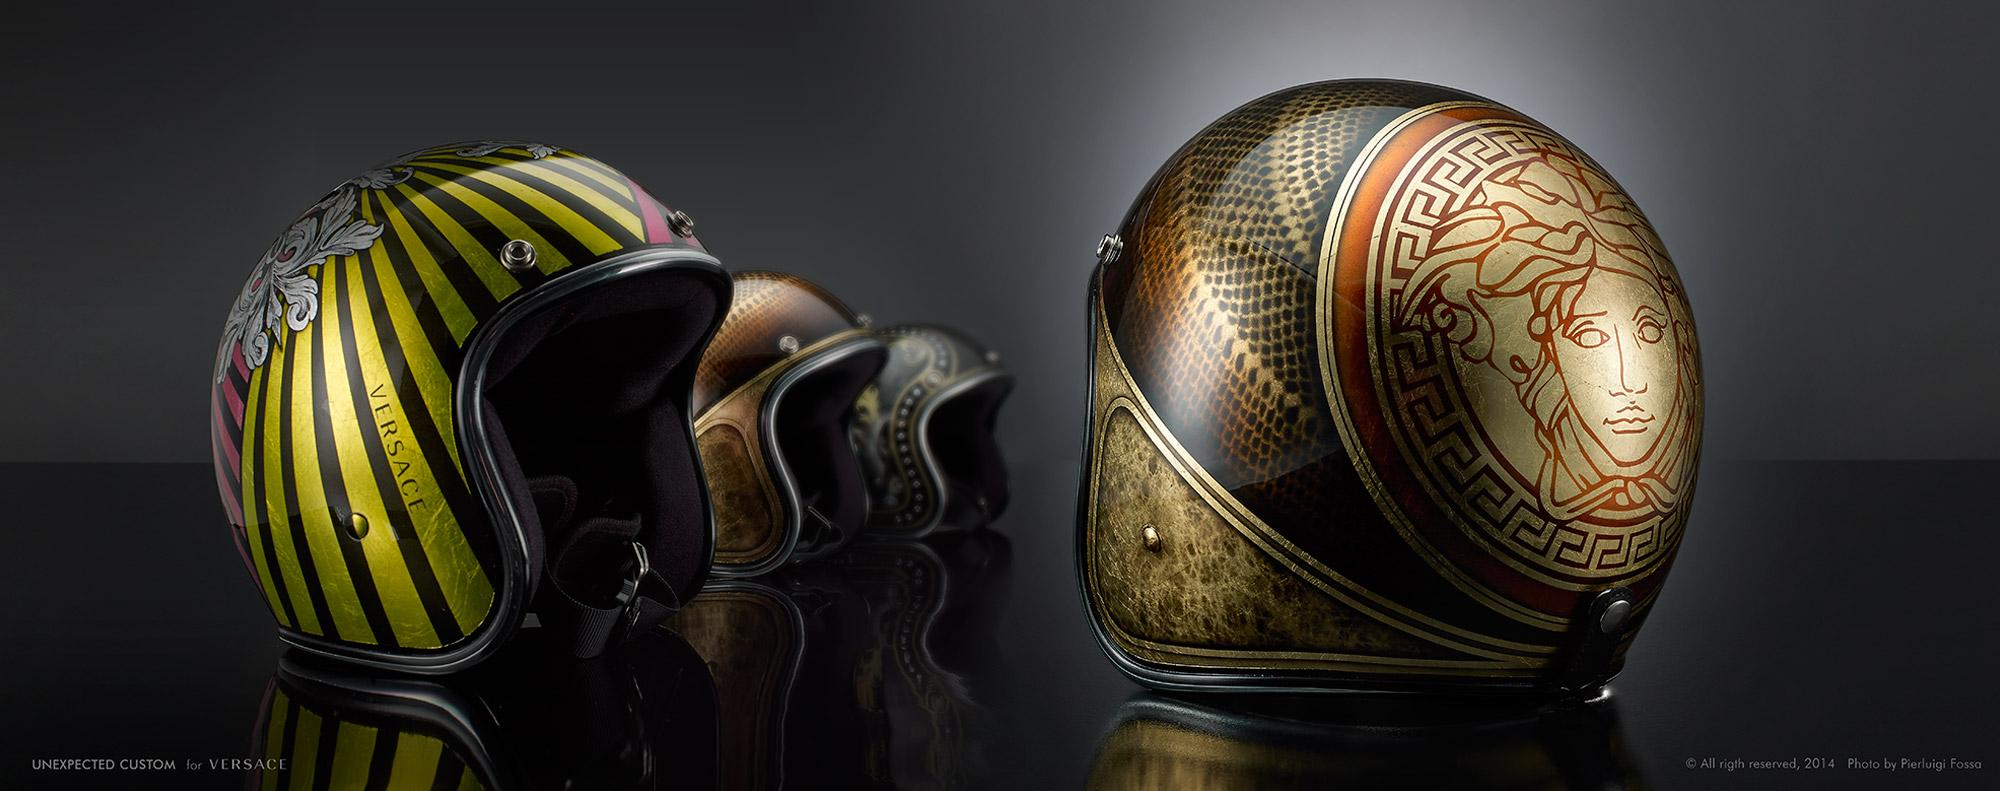 Create your own biker style with the daring #Versace helmets. http://t.co/yo72Ni40yh #VersaceMenswear http://t.co/NCxdbG4VnV